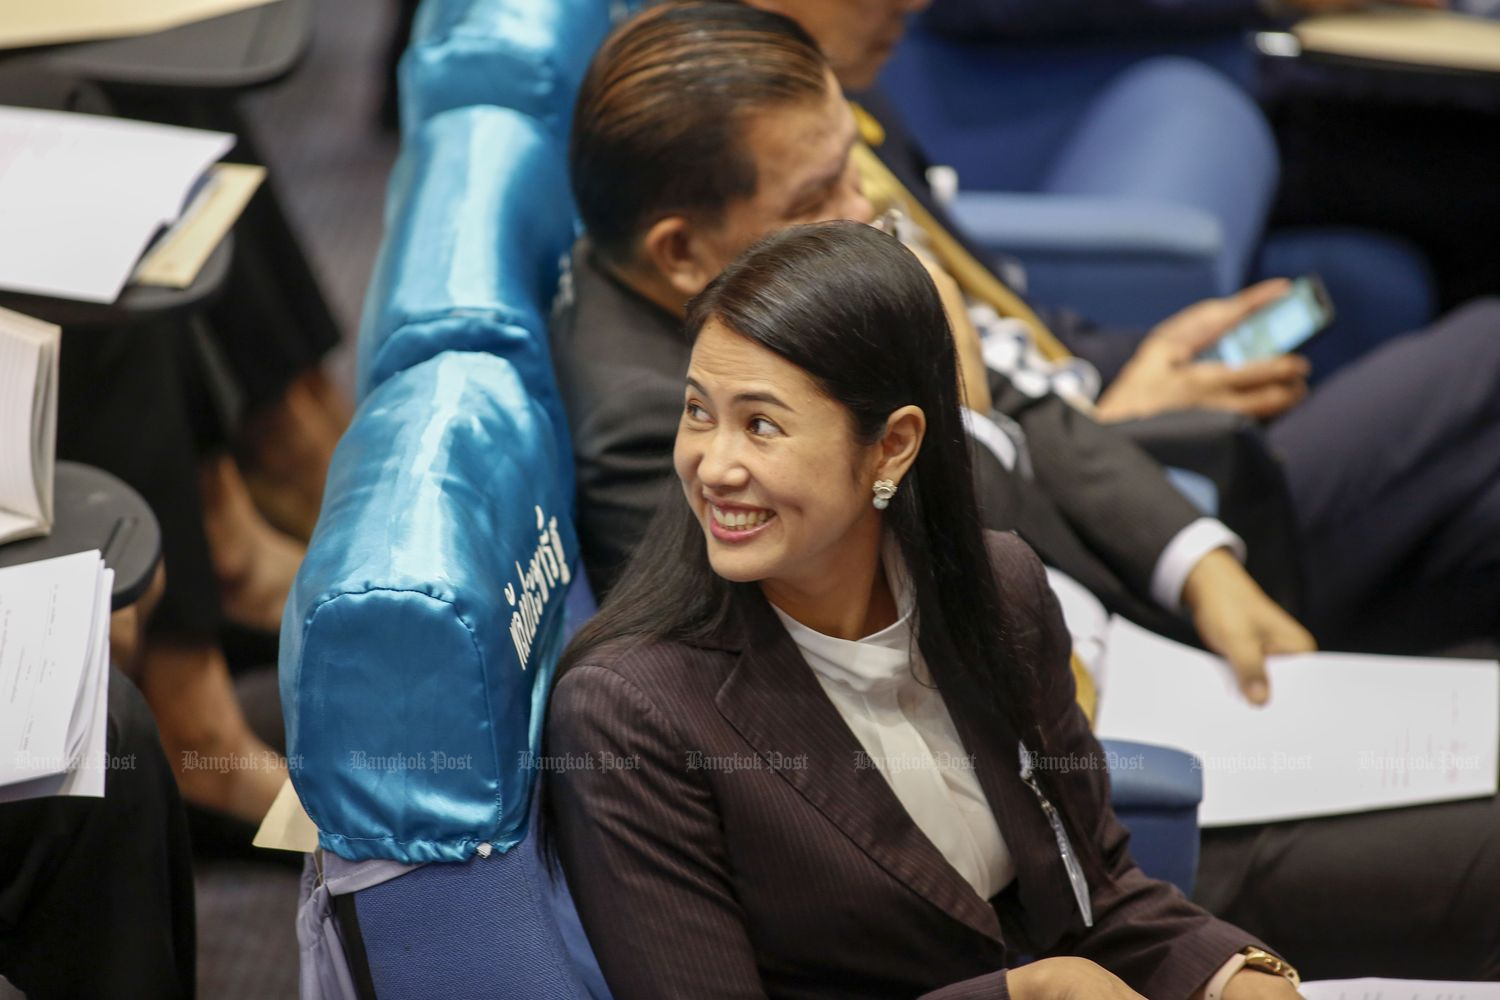 Pareena Kraikupt, a Palang Pracharath MP for Ratchaburi province, during the debate after Prime Minister Prayut Chan-o-cha delivered his policy statement to Parliament on July 26. (Photo by Pattarapong Chatpattarasill)